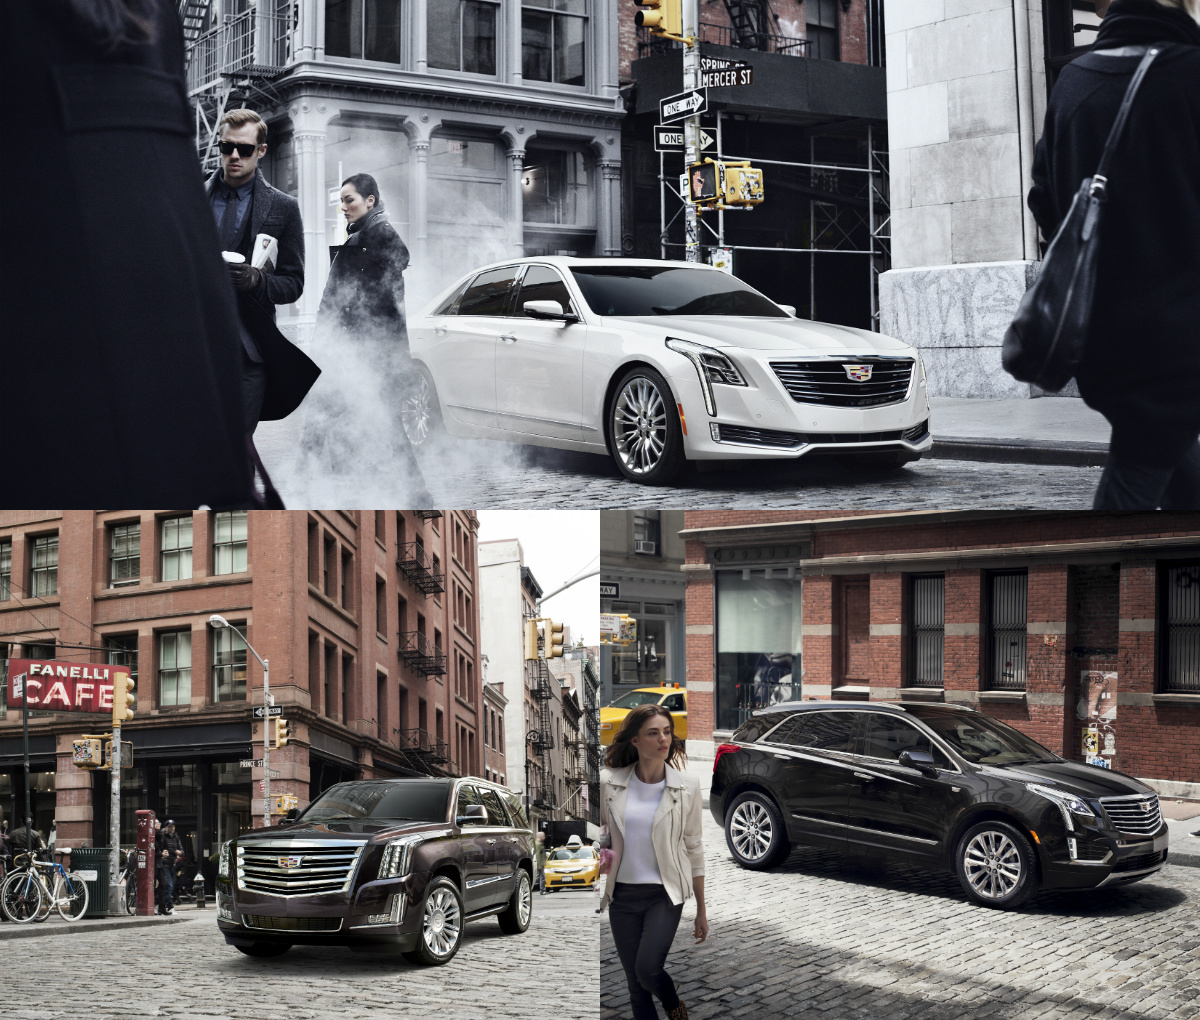 Luxury Car Finance Nyc Near: Cadillac Introduces First-of-its-kind Luxury Car